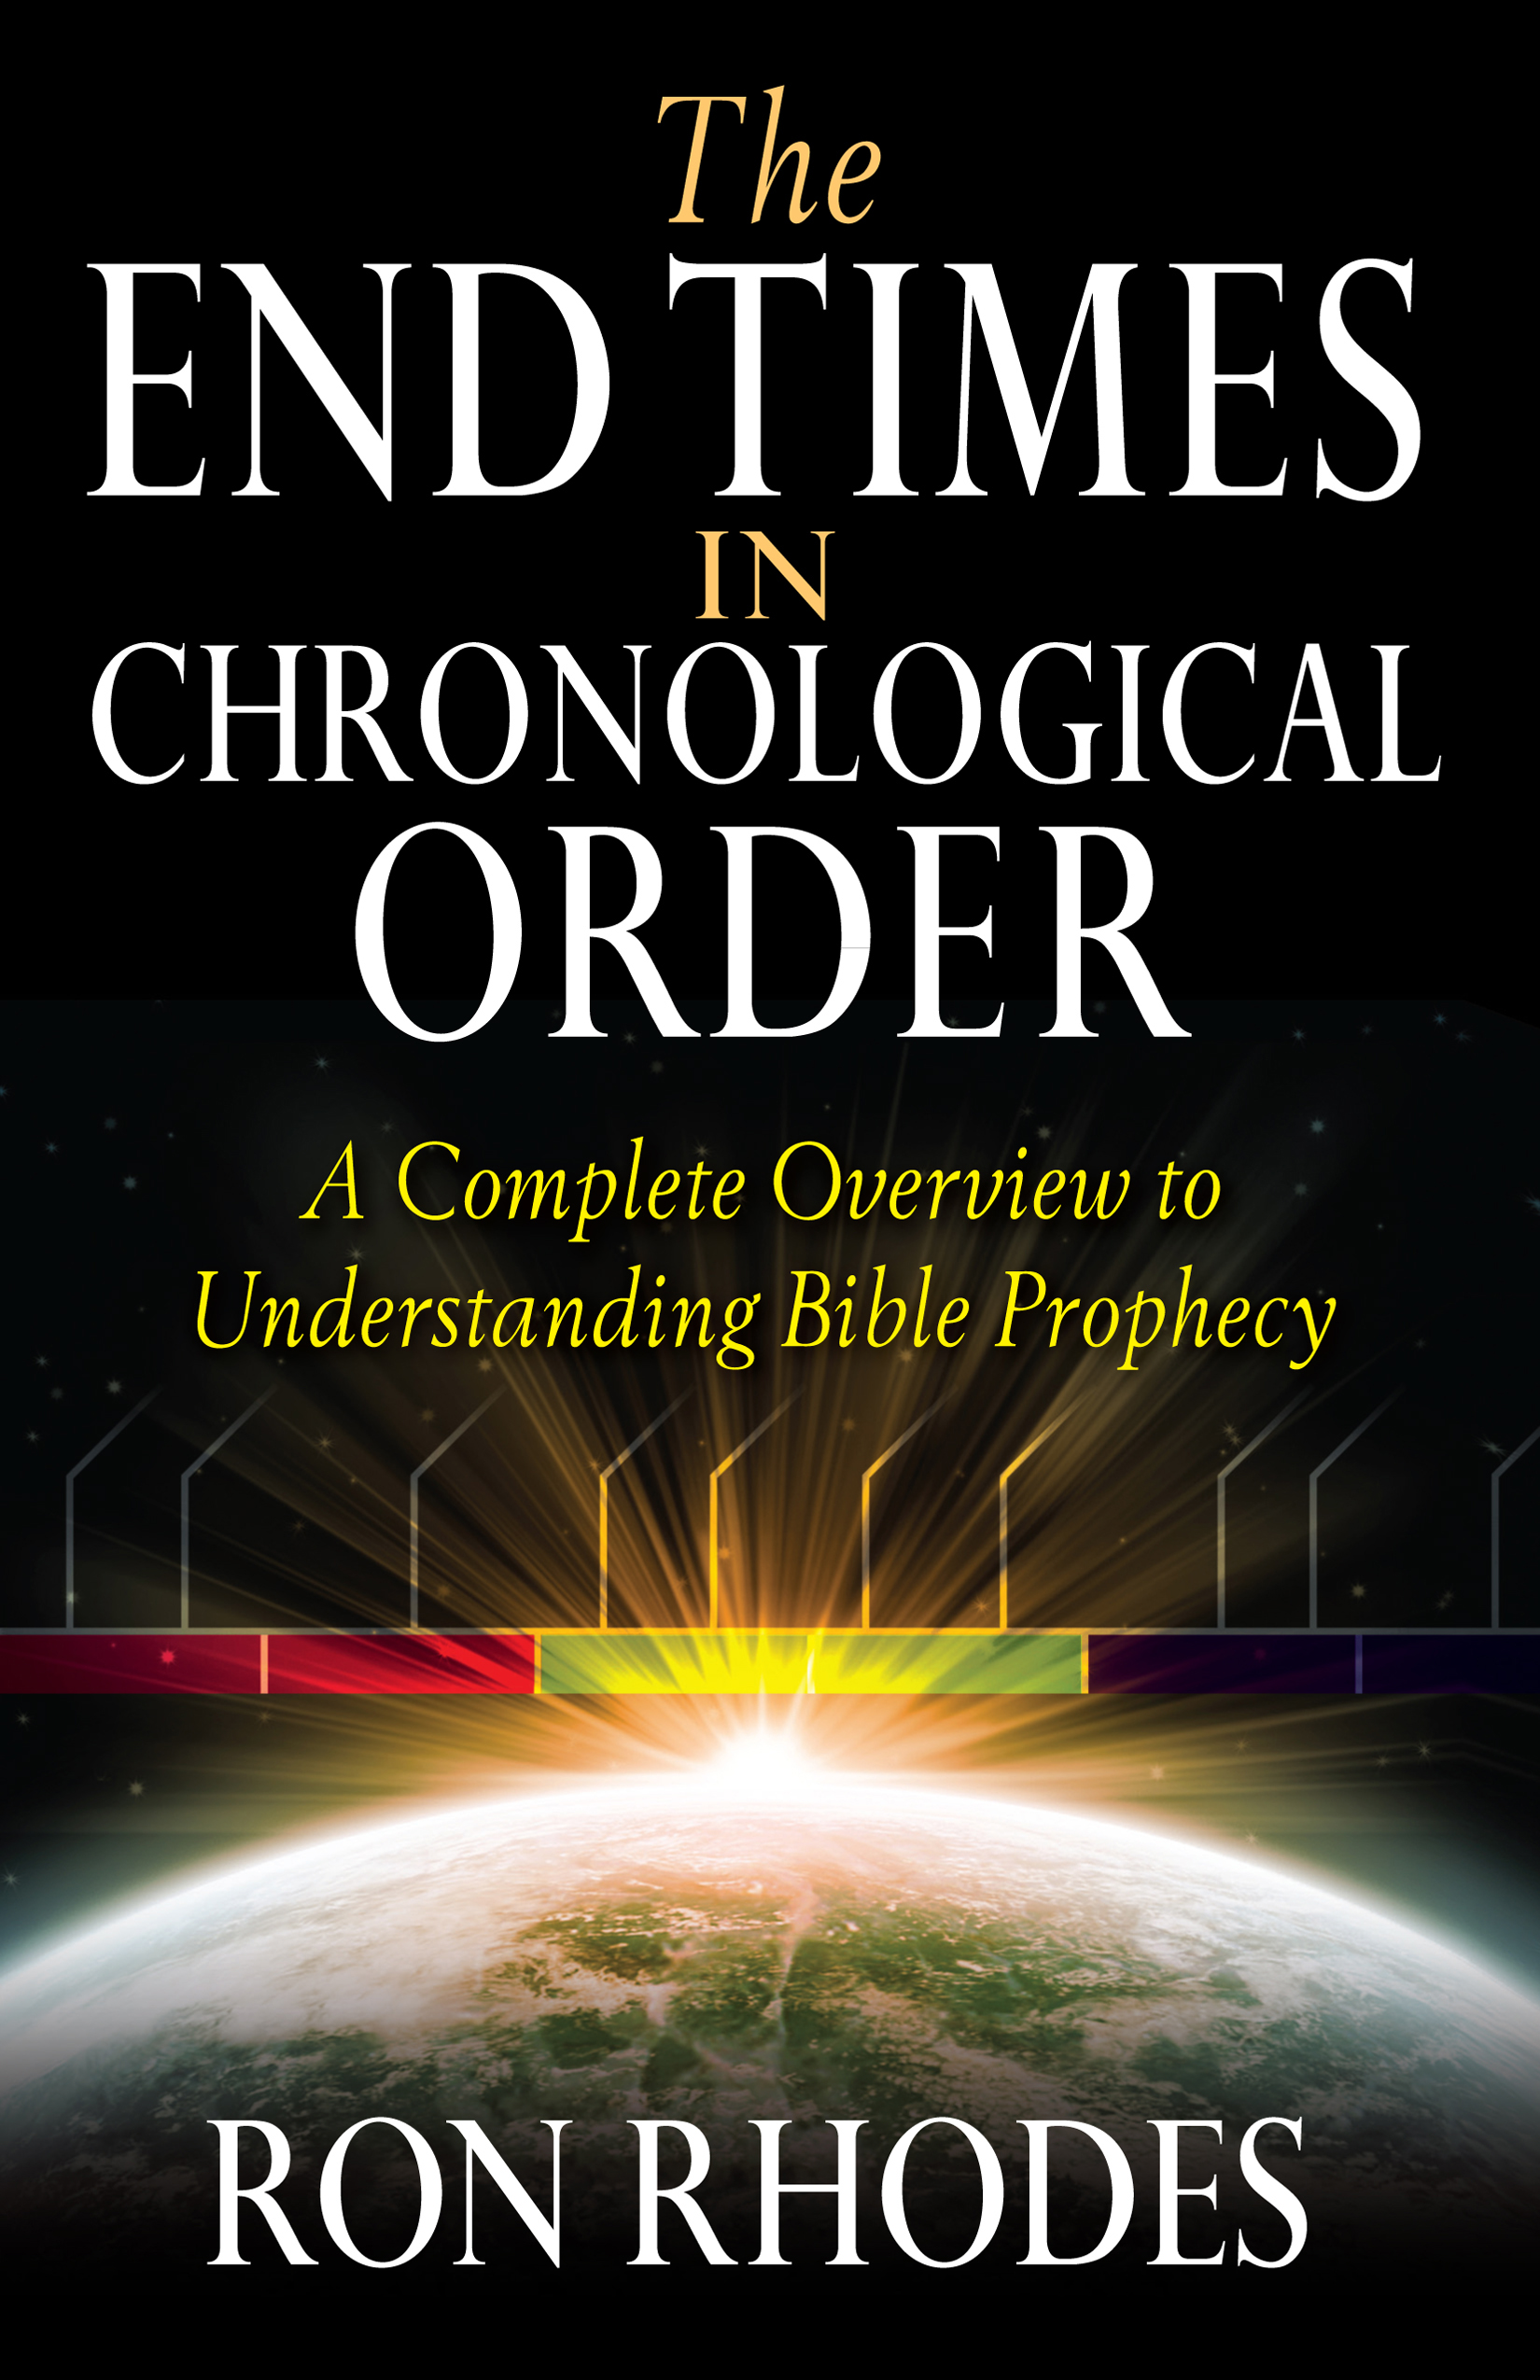 The End Times in Chronological Order